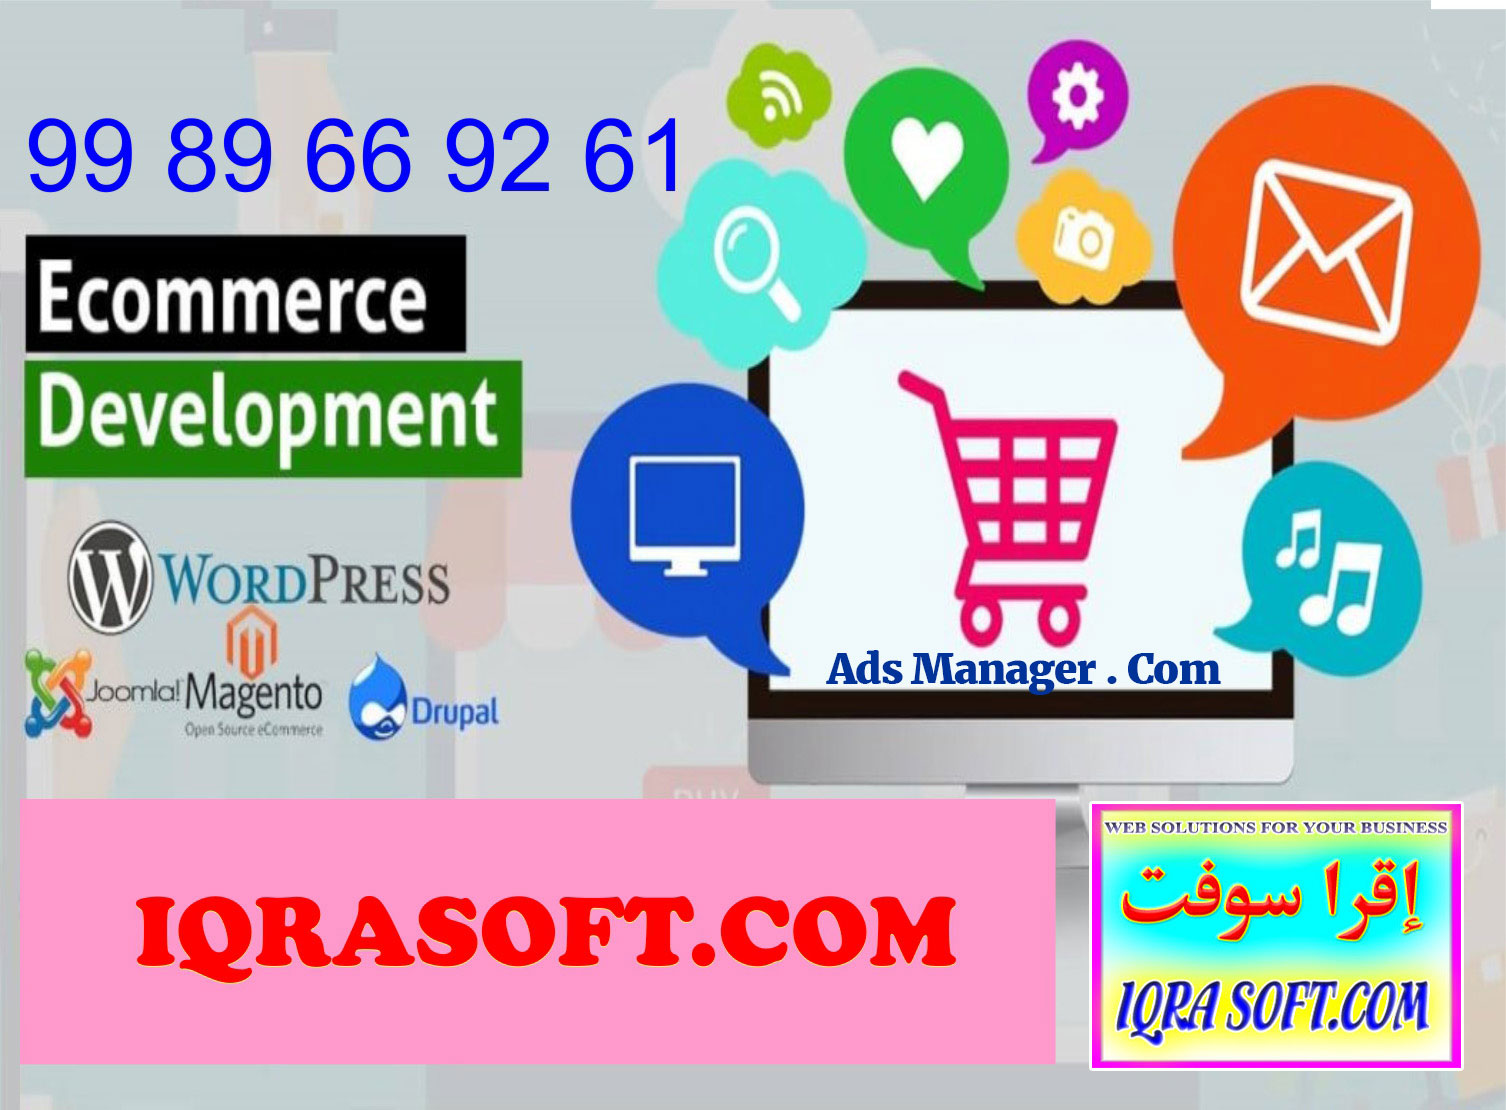 IQRASOFT.COM - Websites solutions Business, Entrepreneurship, Consulting, Advertising, Advanced Digital Marketing Training and Designing and Development Services !